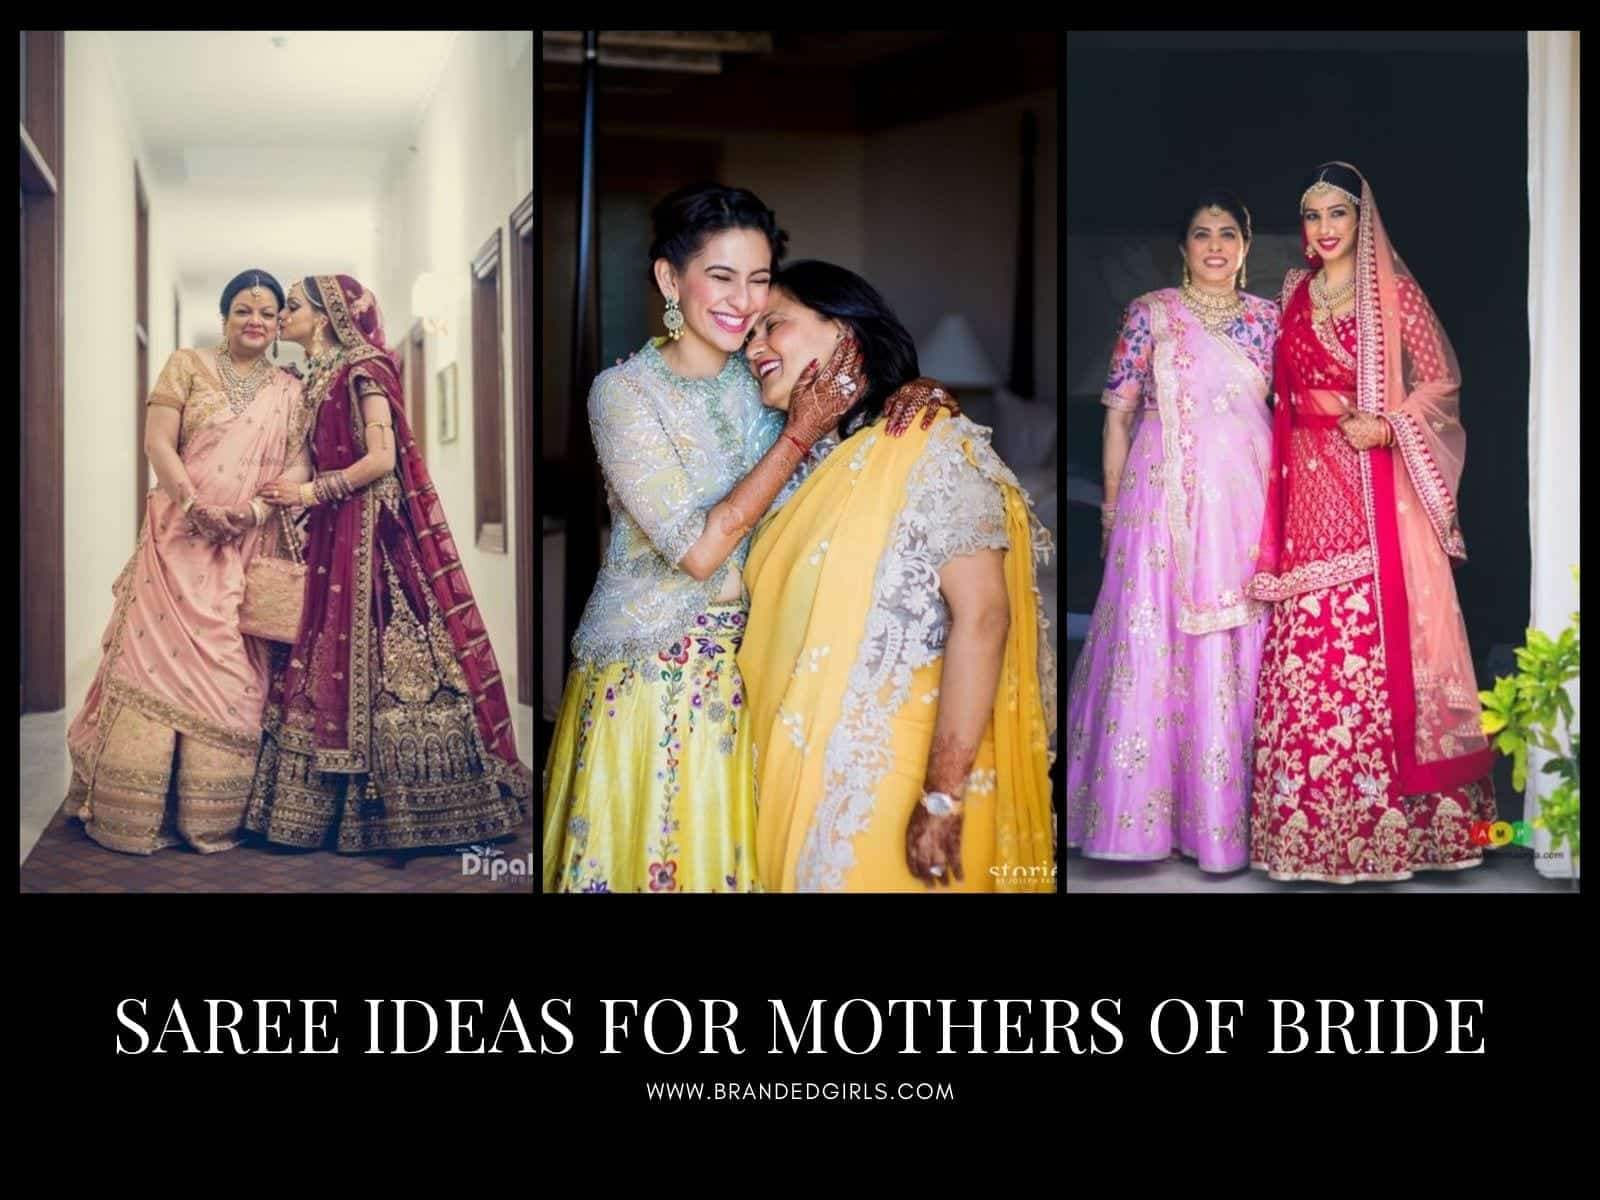 Best-Saree-Ideas-for-Mothers-of-The-Bride 20 Best Saree Ideas for Mothers of The Bride 2019